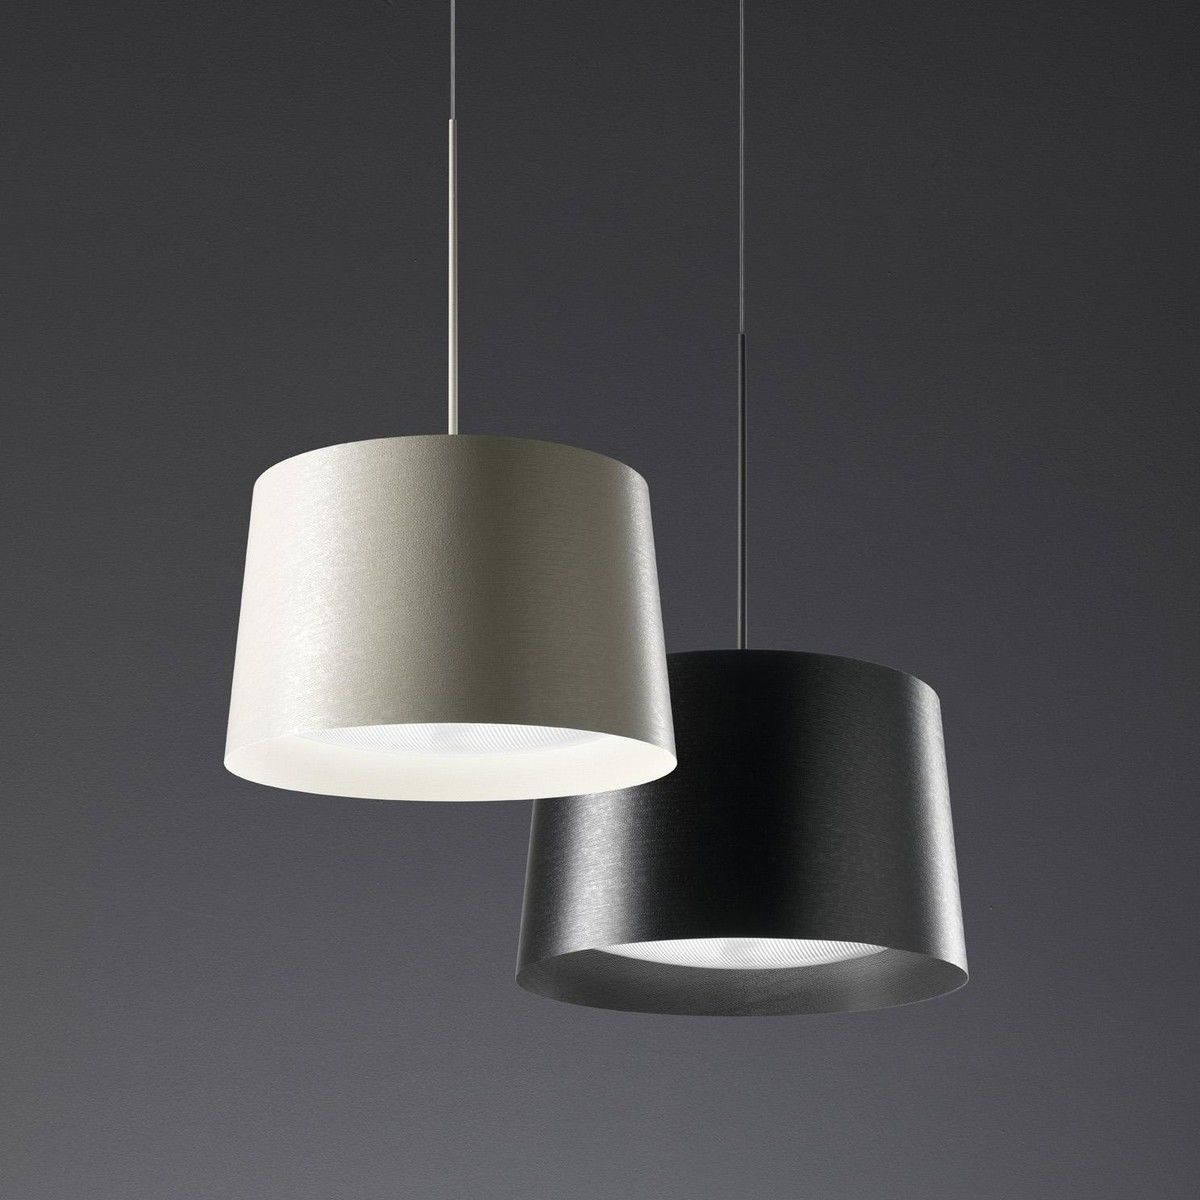 Twiggy Grande  Suspension  Foscarini  AmbienteDirectcom